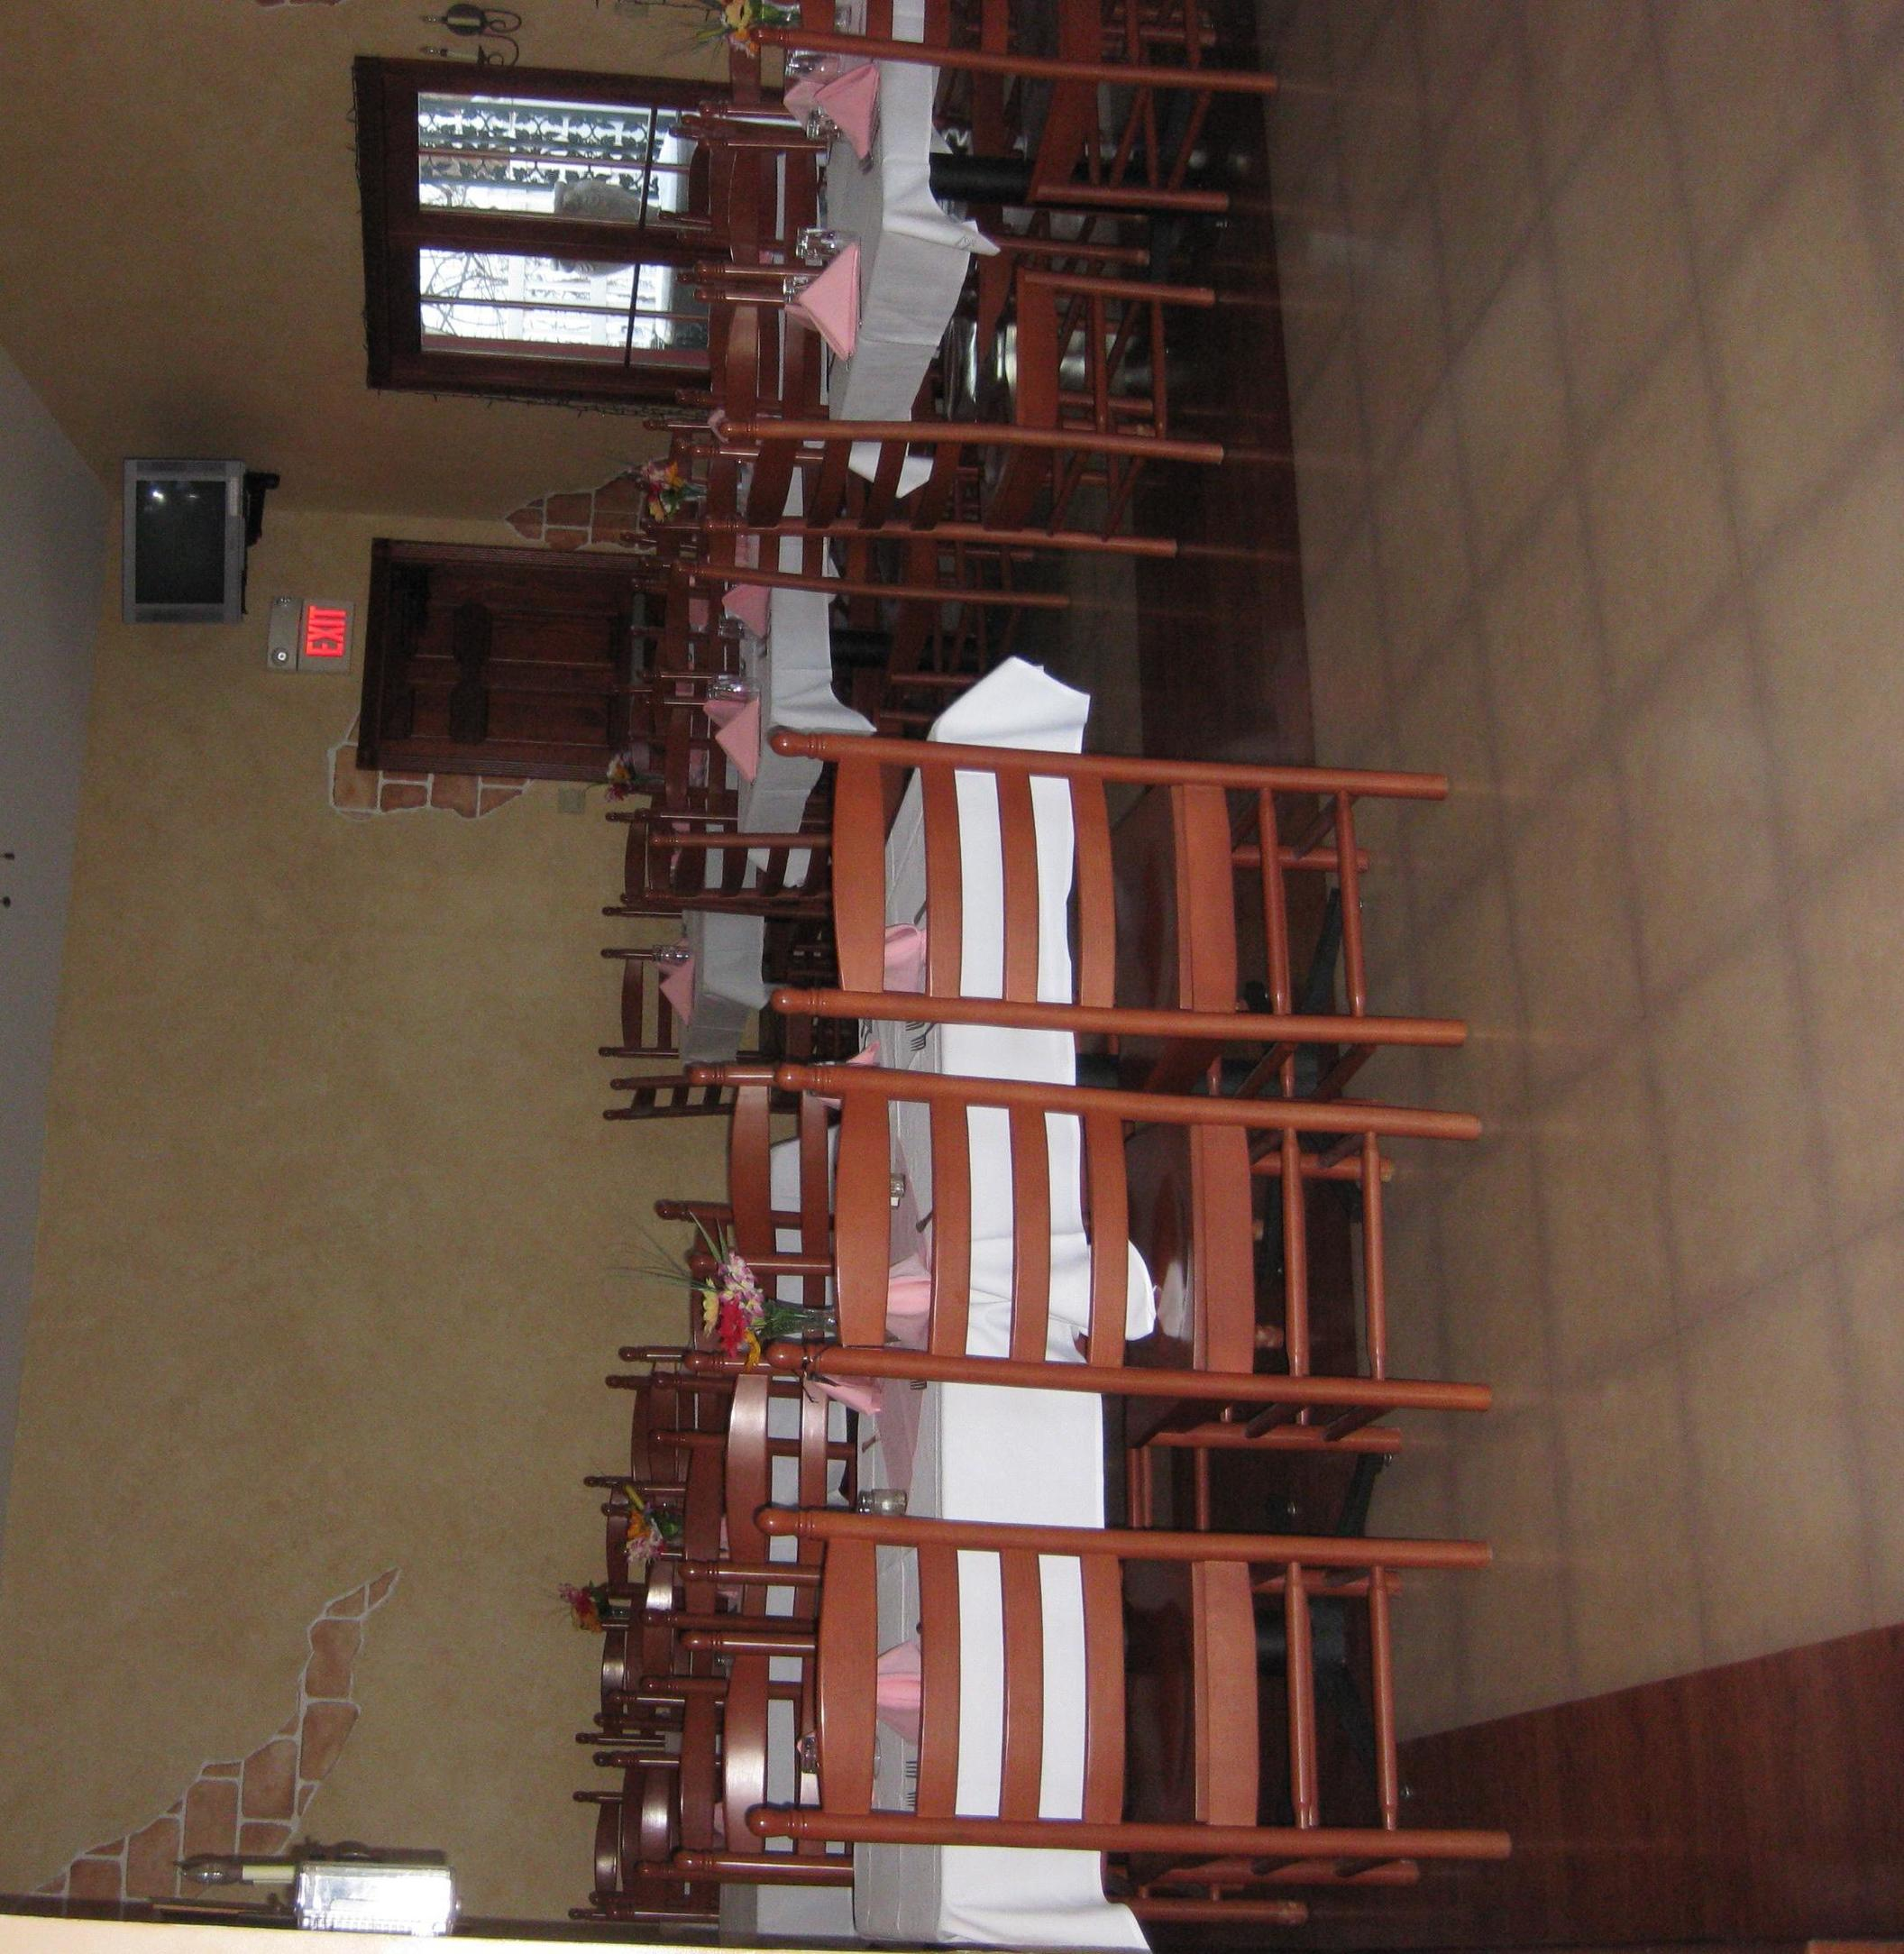 Our Banquet Hall for all your special occasions